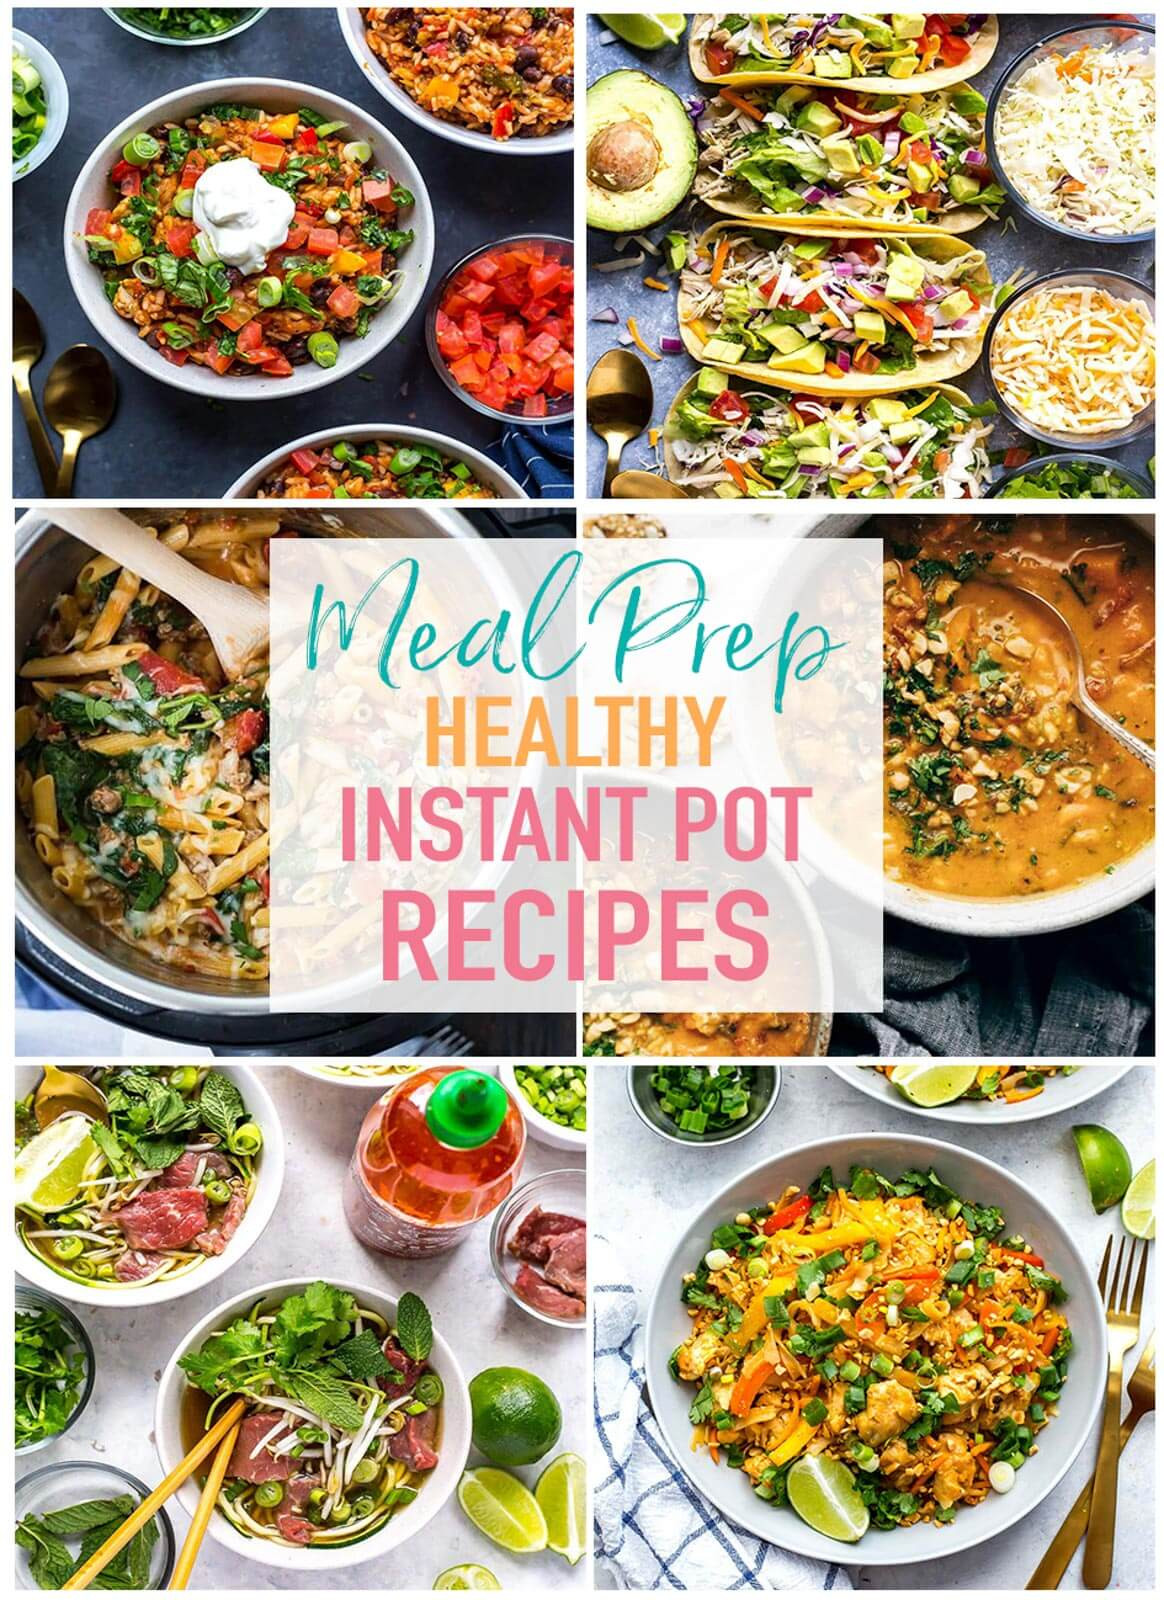 Instant Pot Healthy Recipes  17 Healthy Instant Pot Recipes for Meal Prep The Girl on